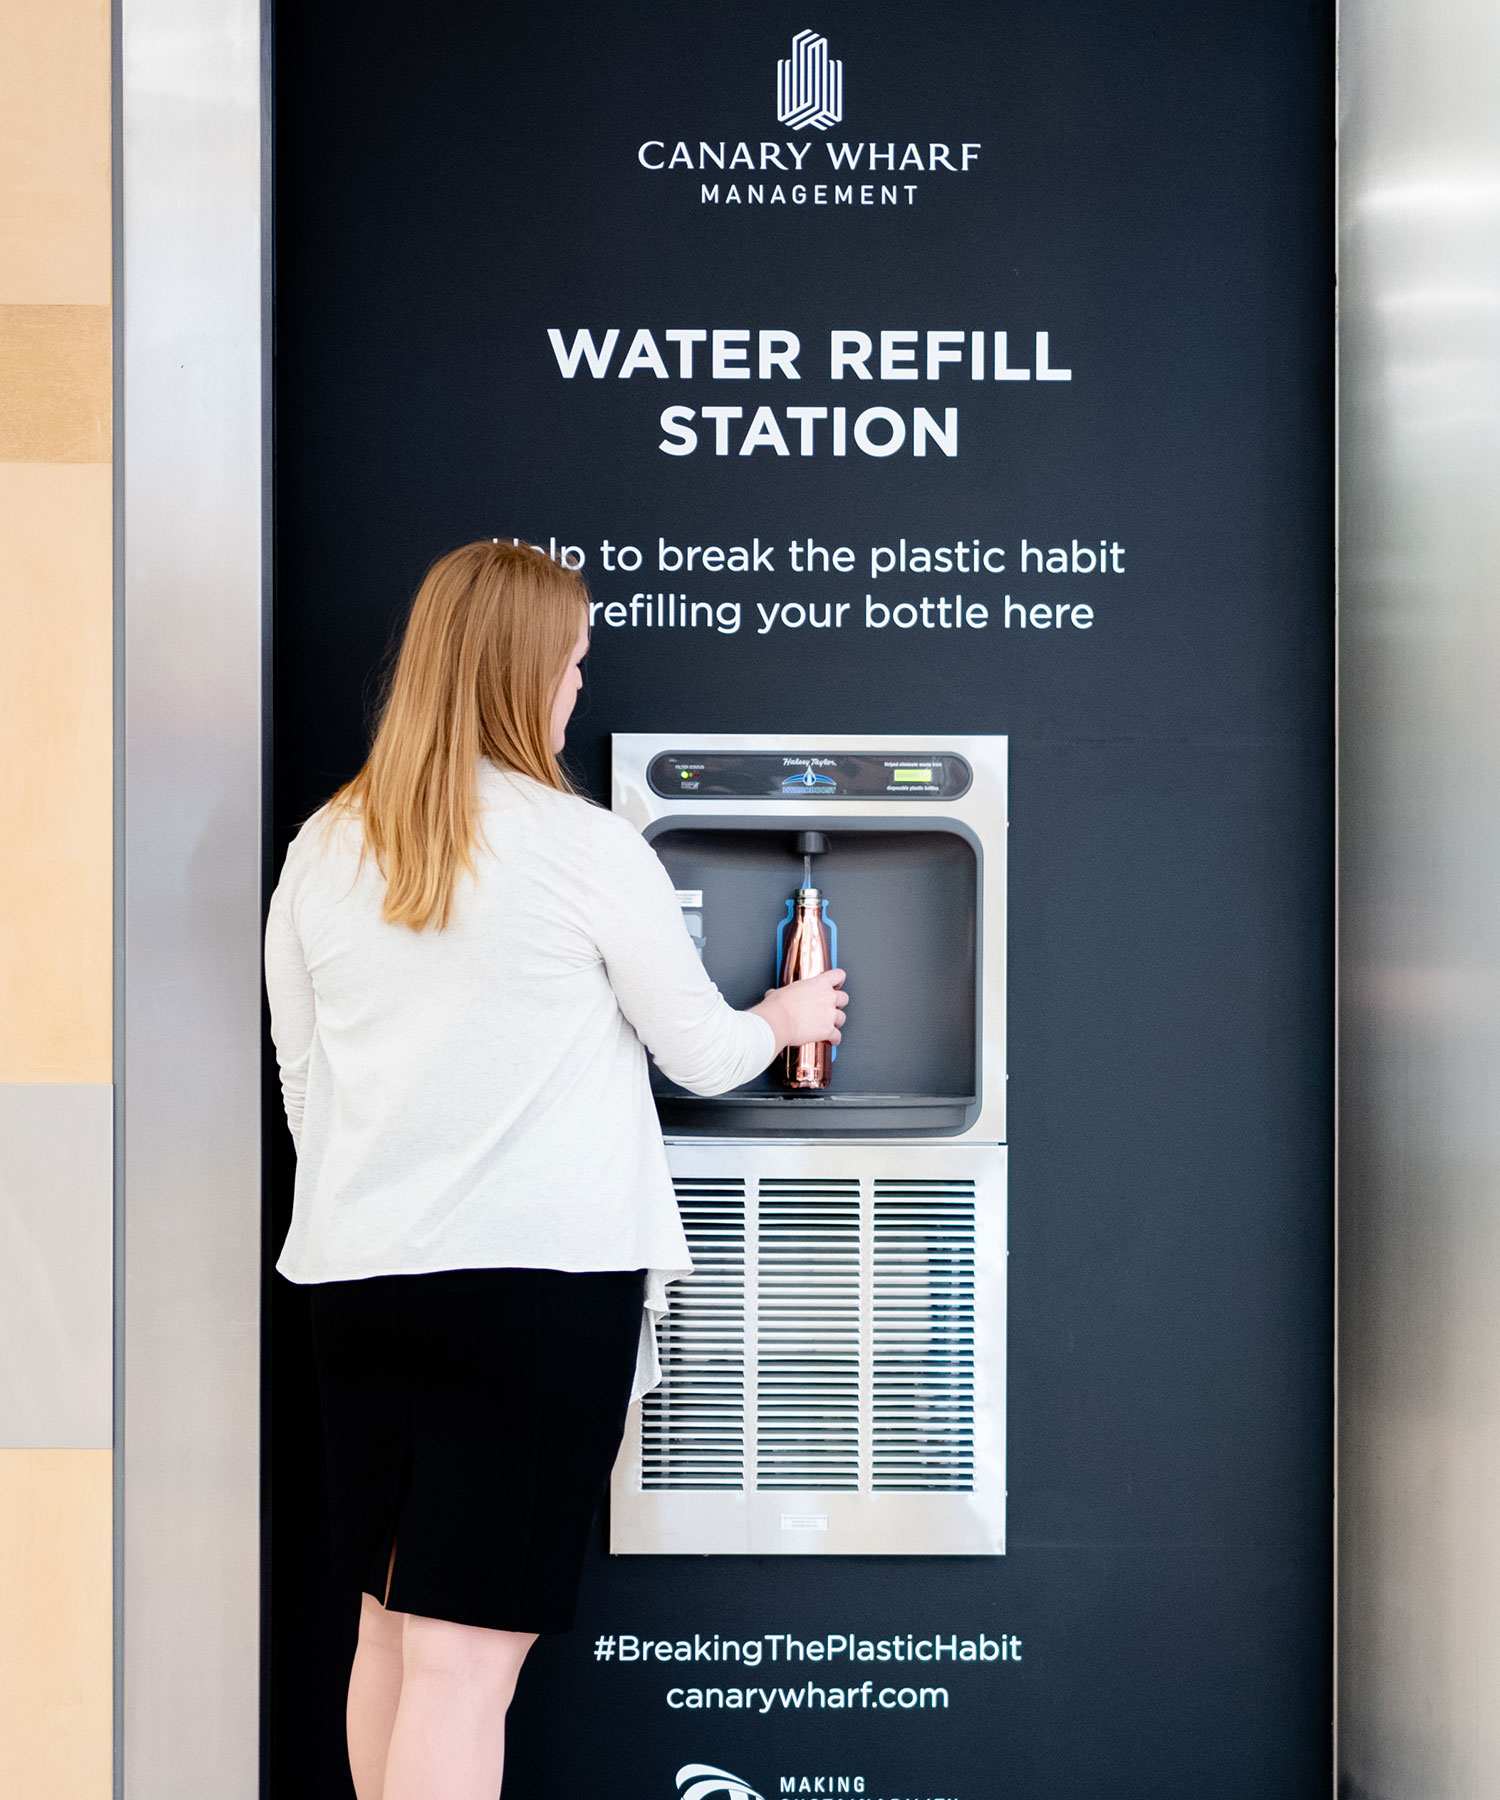 PROMOTING REUSE - We want using refillable water bottles to become the new norm for our visitors at Canary Wharf, however, we understand this can be problematic while on the go. To help, in September 2018 we installed seven refill stations across the Estate, giving you access to water on the go across our malls.